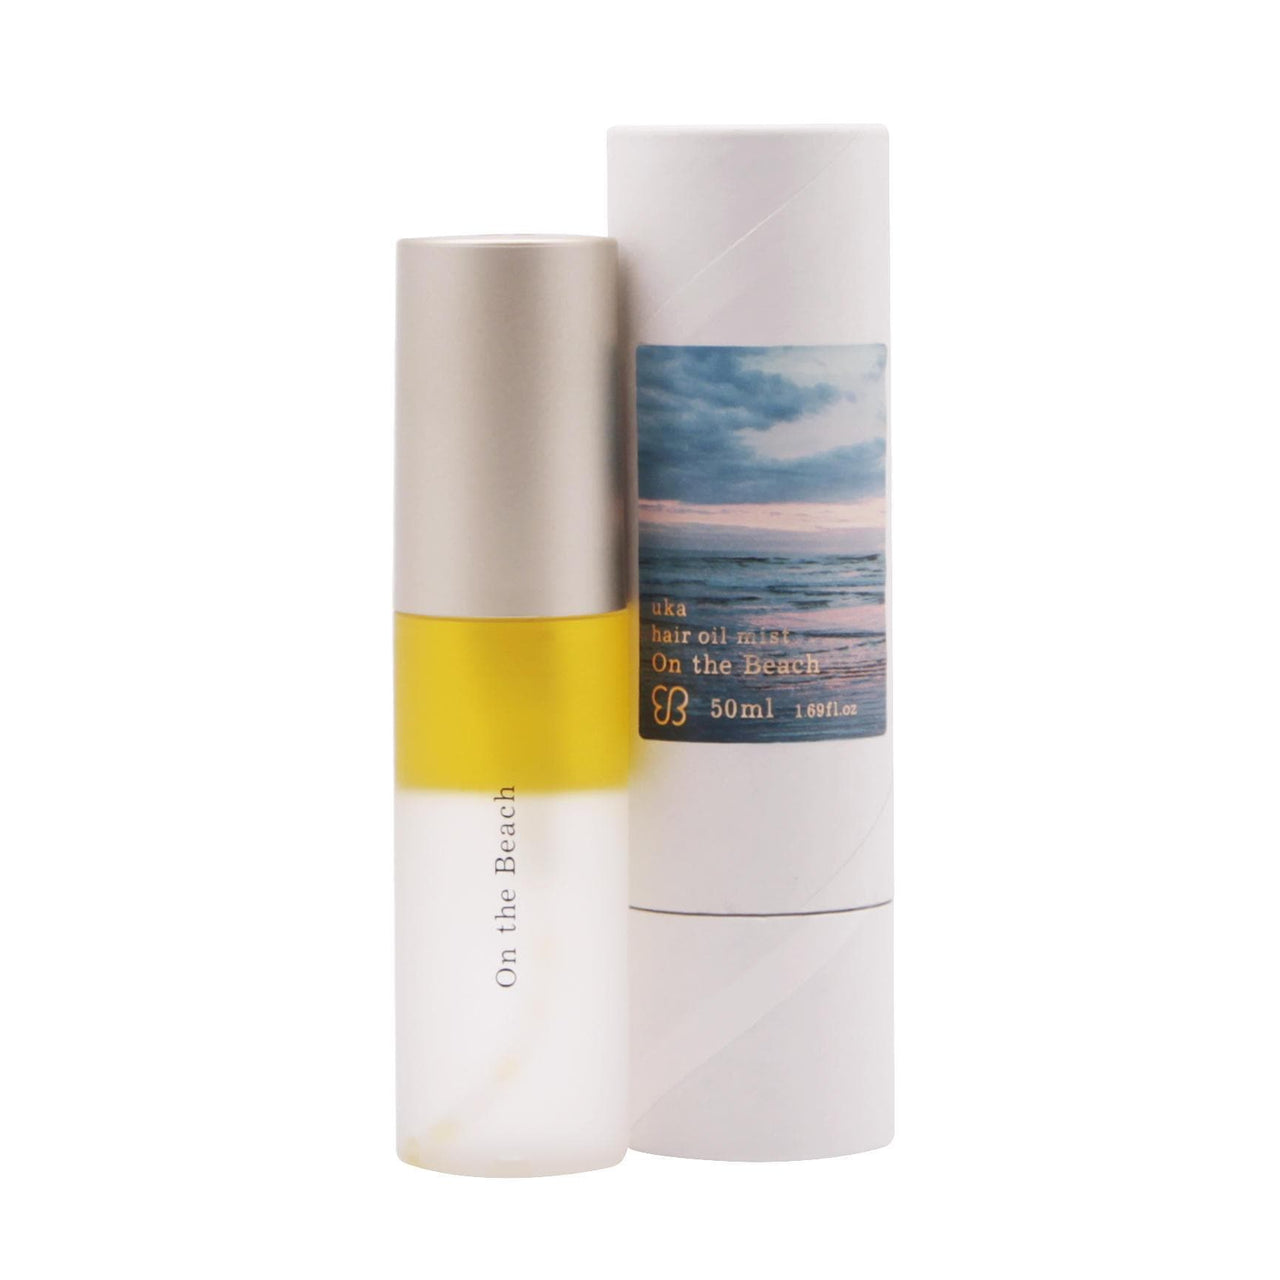 uka Hair On the Beach Hair Oil Mist with UV Protection